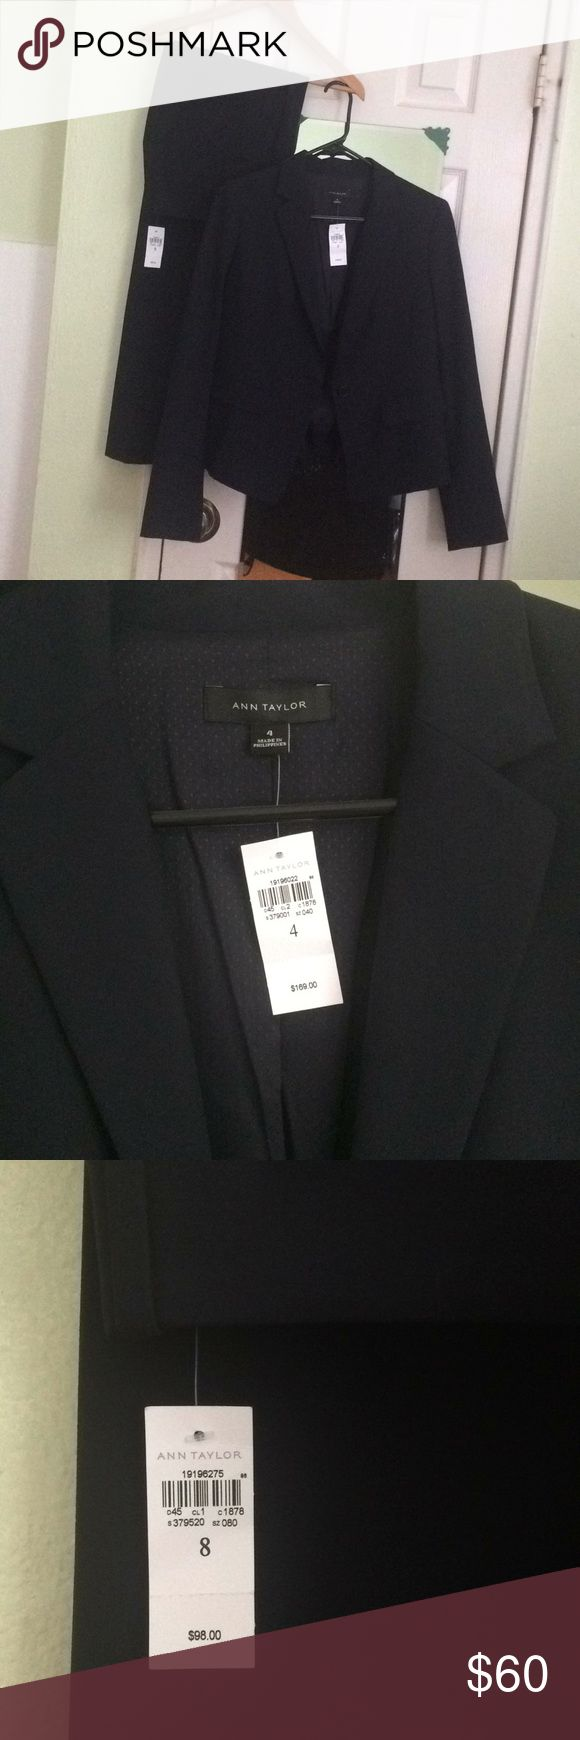 Ann Taylor Navy Pants Size 8 Pants. Good for interviews or business/professional environment. Devin Fit.   Here they are in store:  https://www.anntaylor.com/the-madison-trouser---devin-fit/443388?skuId=23610811&defaultColor=2158&prodId=443388&cid=BRD-AT-G-PLA-Bottoms%7cAT_FP_Bottoms&gclid=EAIaIQobChMIlYDmpo7a1gIViYK9Ch3m-AtXEAkYByABEgLh9_D_BwE&gclsrc=aw.ds  *Suit blazer has sold Ann Taylor Pants Boot Cut & Flare